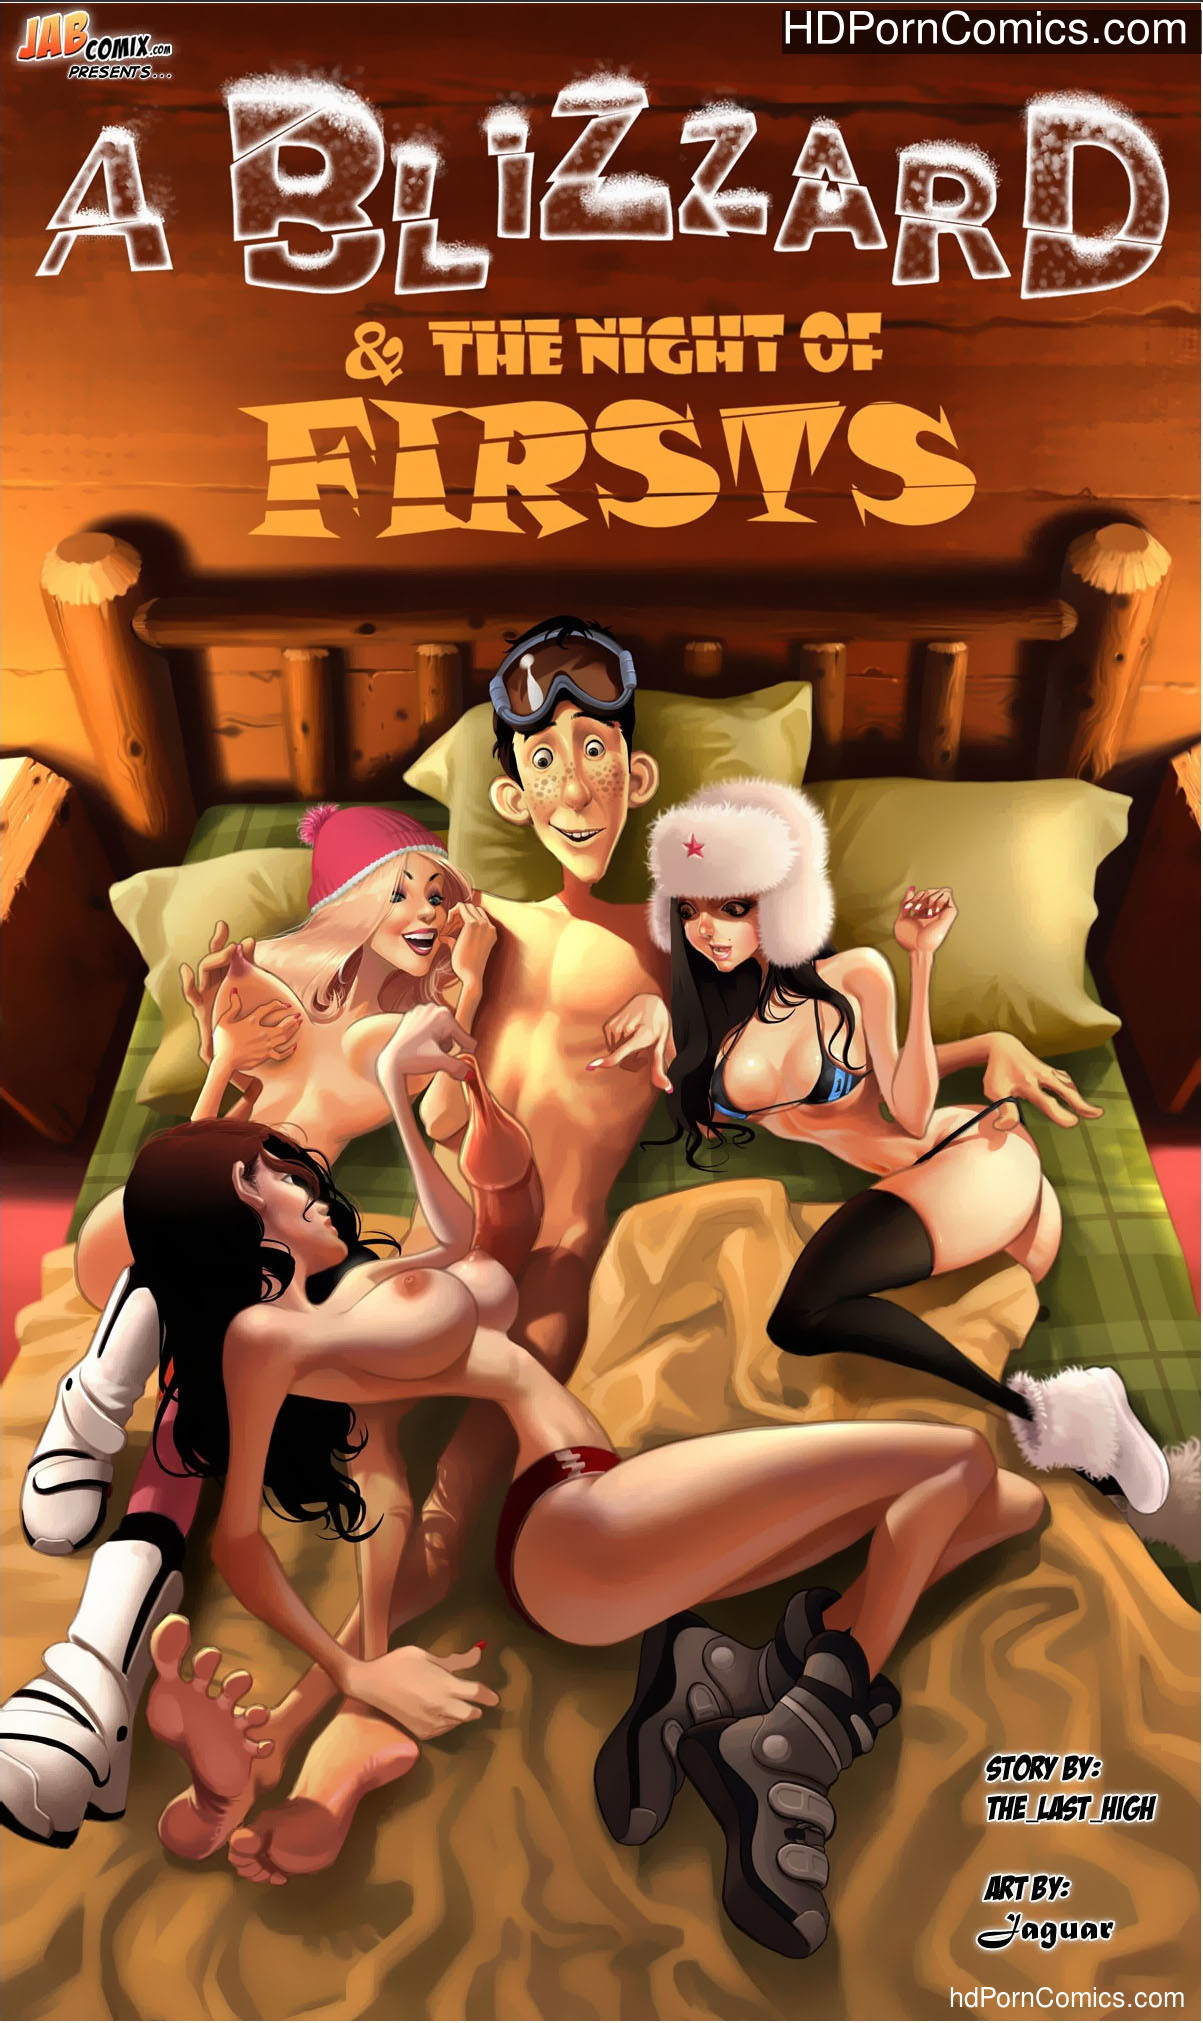 A Blizzard & Night of Firsts [55 Pages] free Porn Comic